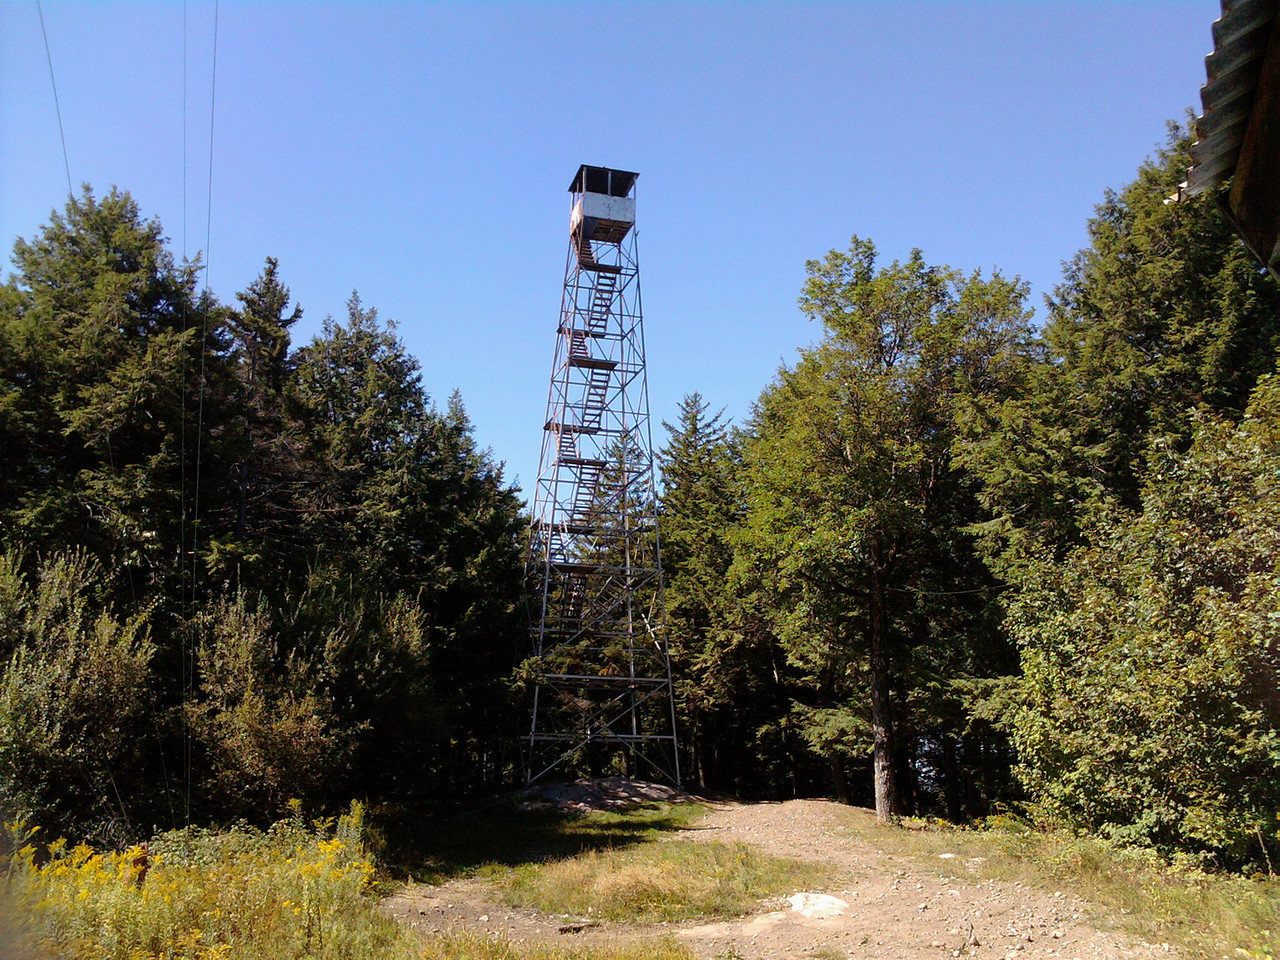 We reached the summit and were sad to see the condition of the place. The old jeep trail was still open so locals ride their quadrunners to the top, have bonfires, break beer bottles all over the place, and shoot holes in the fire tower cab. I had to put the dog on a leash for the first time ever to protect him from stepping on glass.